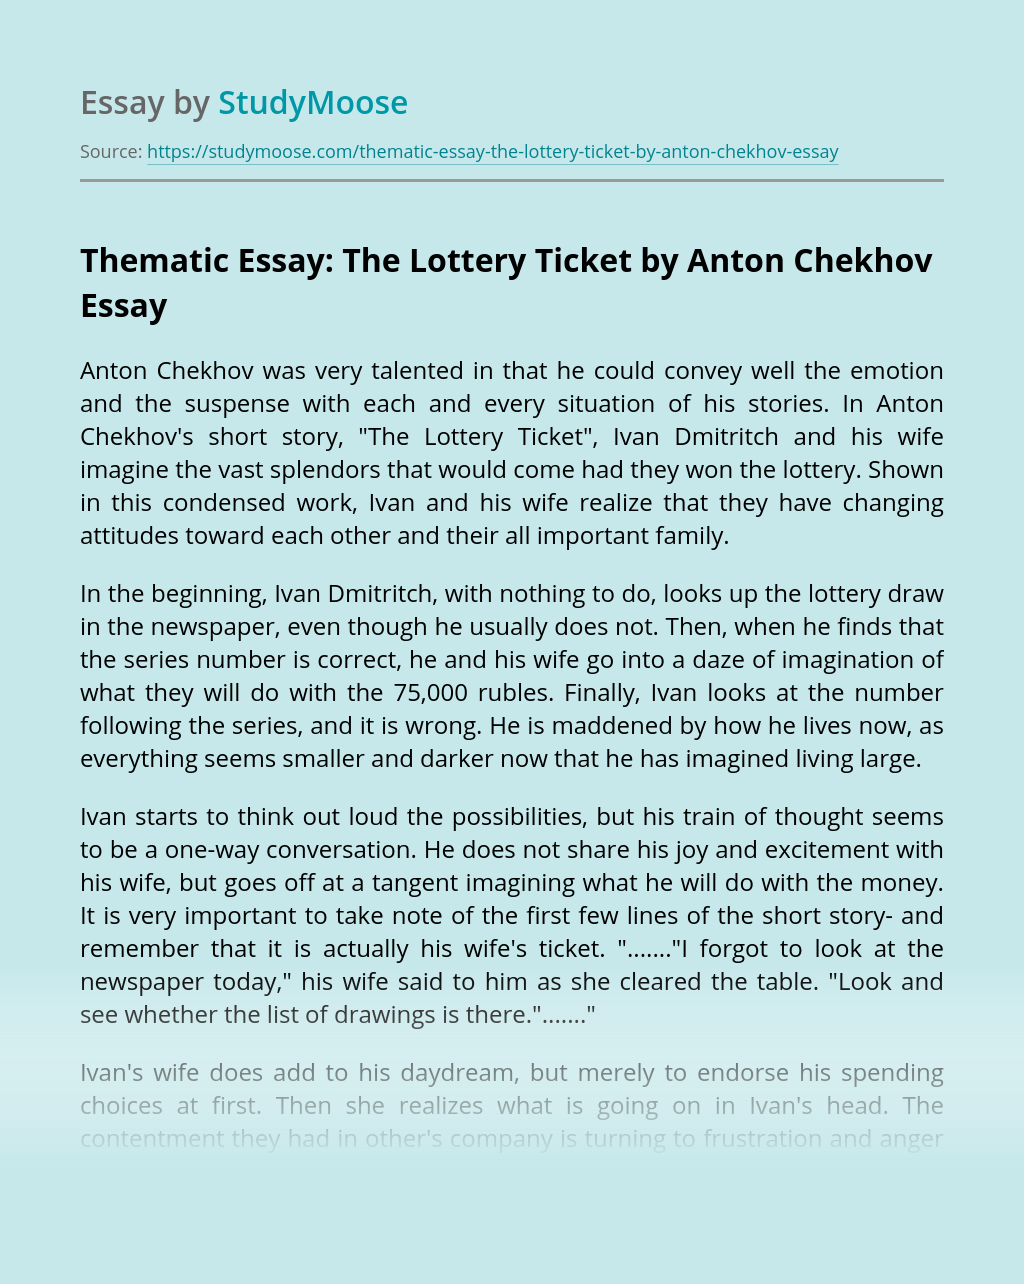 Thematic Essay: The Lottery Ticket by Anton Chekhov